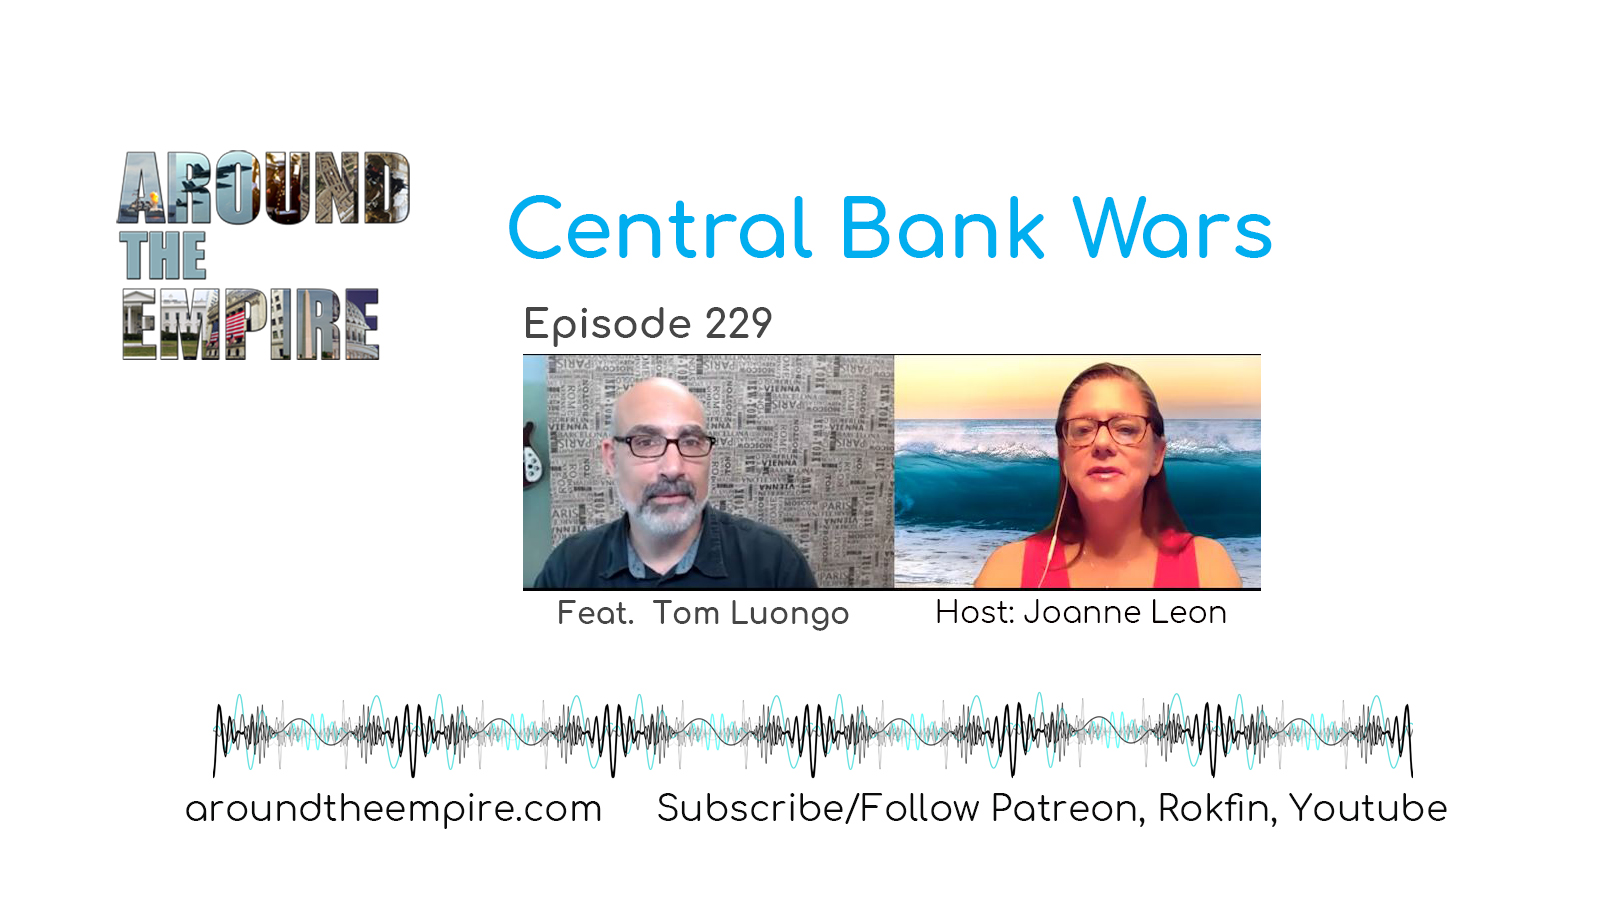 Ep 229 Central Bank Wars feat Tom Luongo